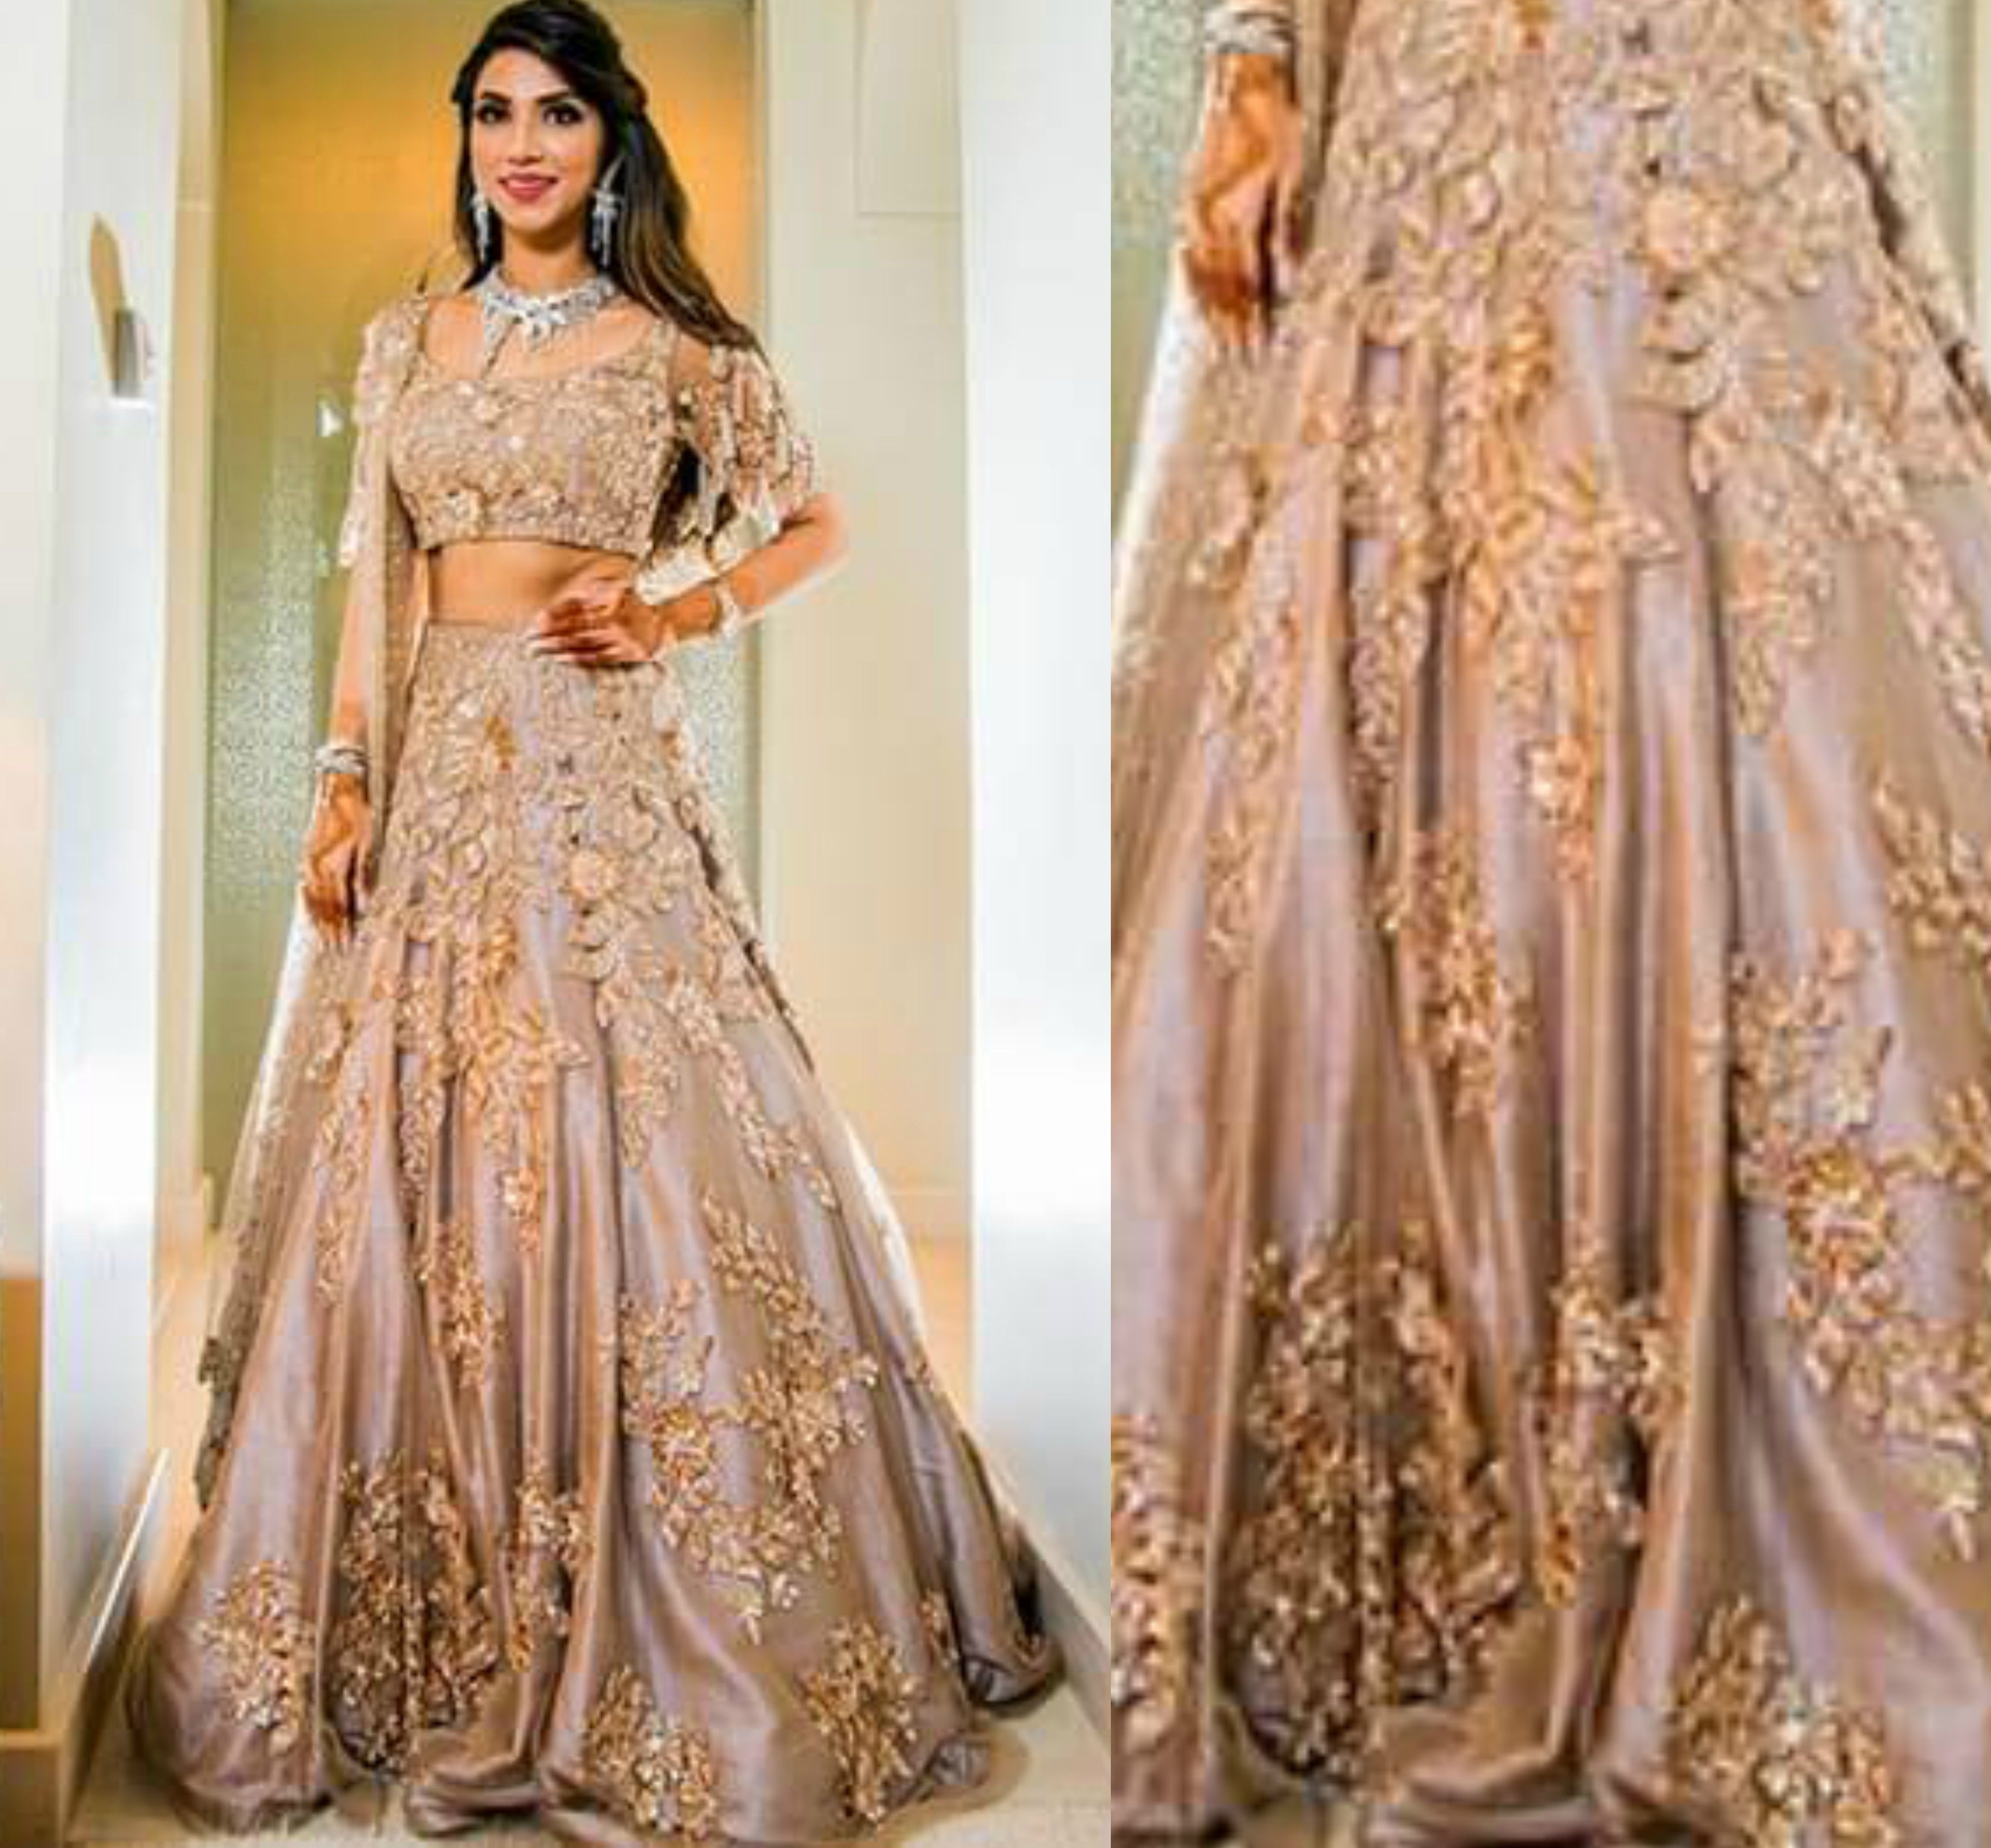 Indian Wedding Dresses For Ladies 61 Off Awi Com